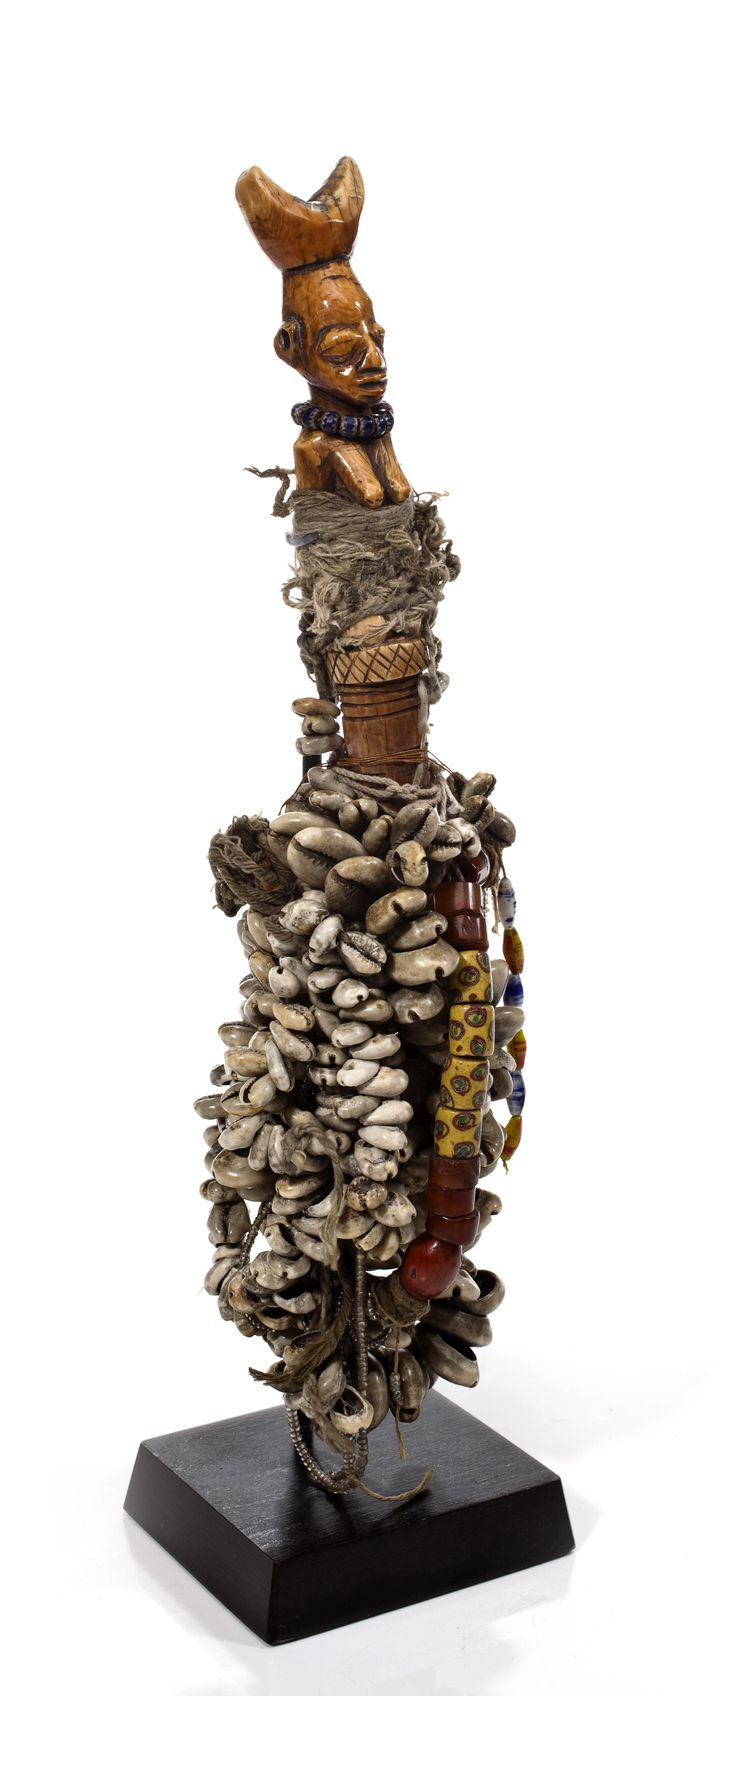 Africa | Whistle from the Yoruba people of Nigeria | Ivory, decorated with fiber, glass beads and cowrie shells